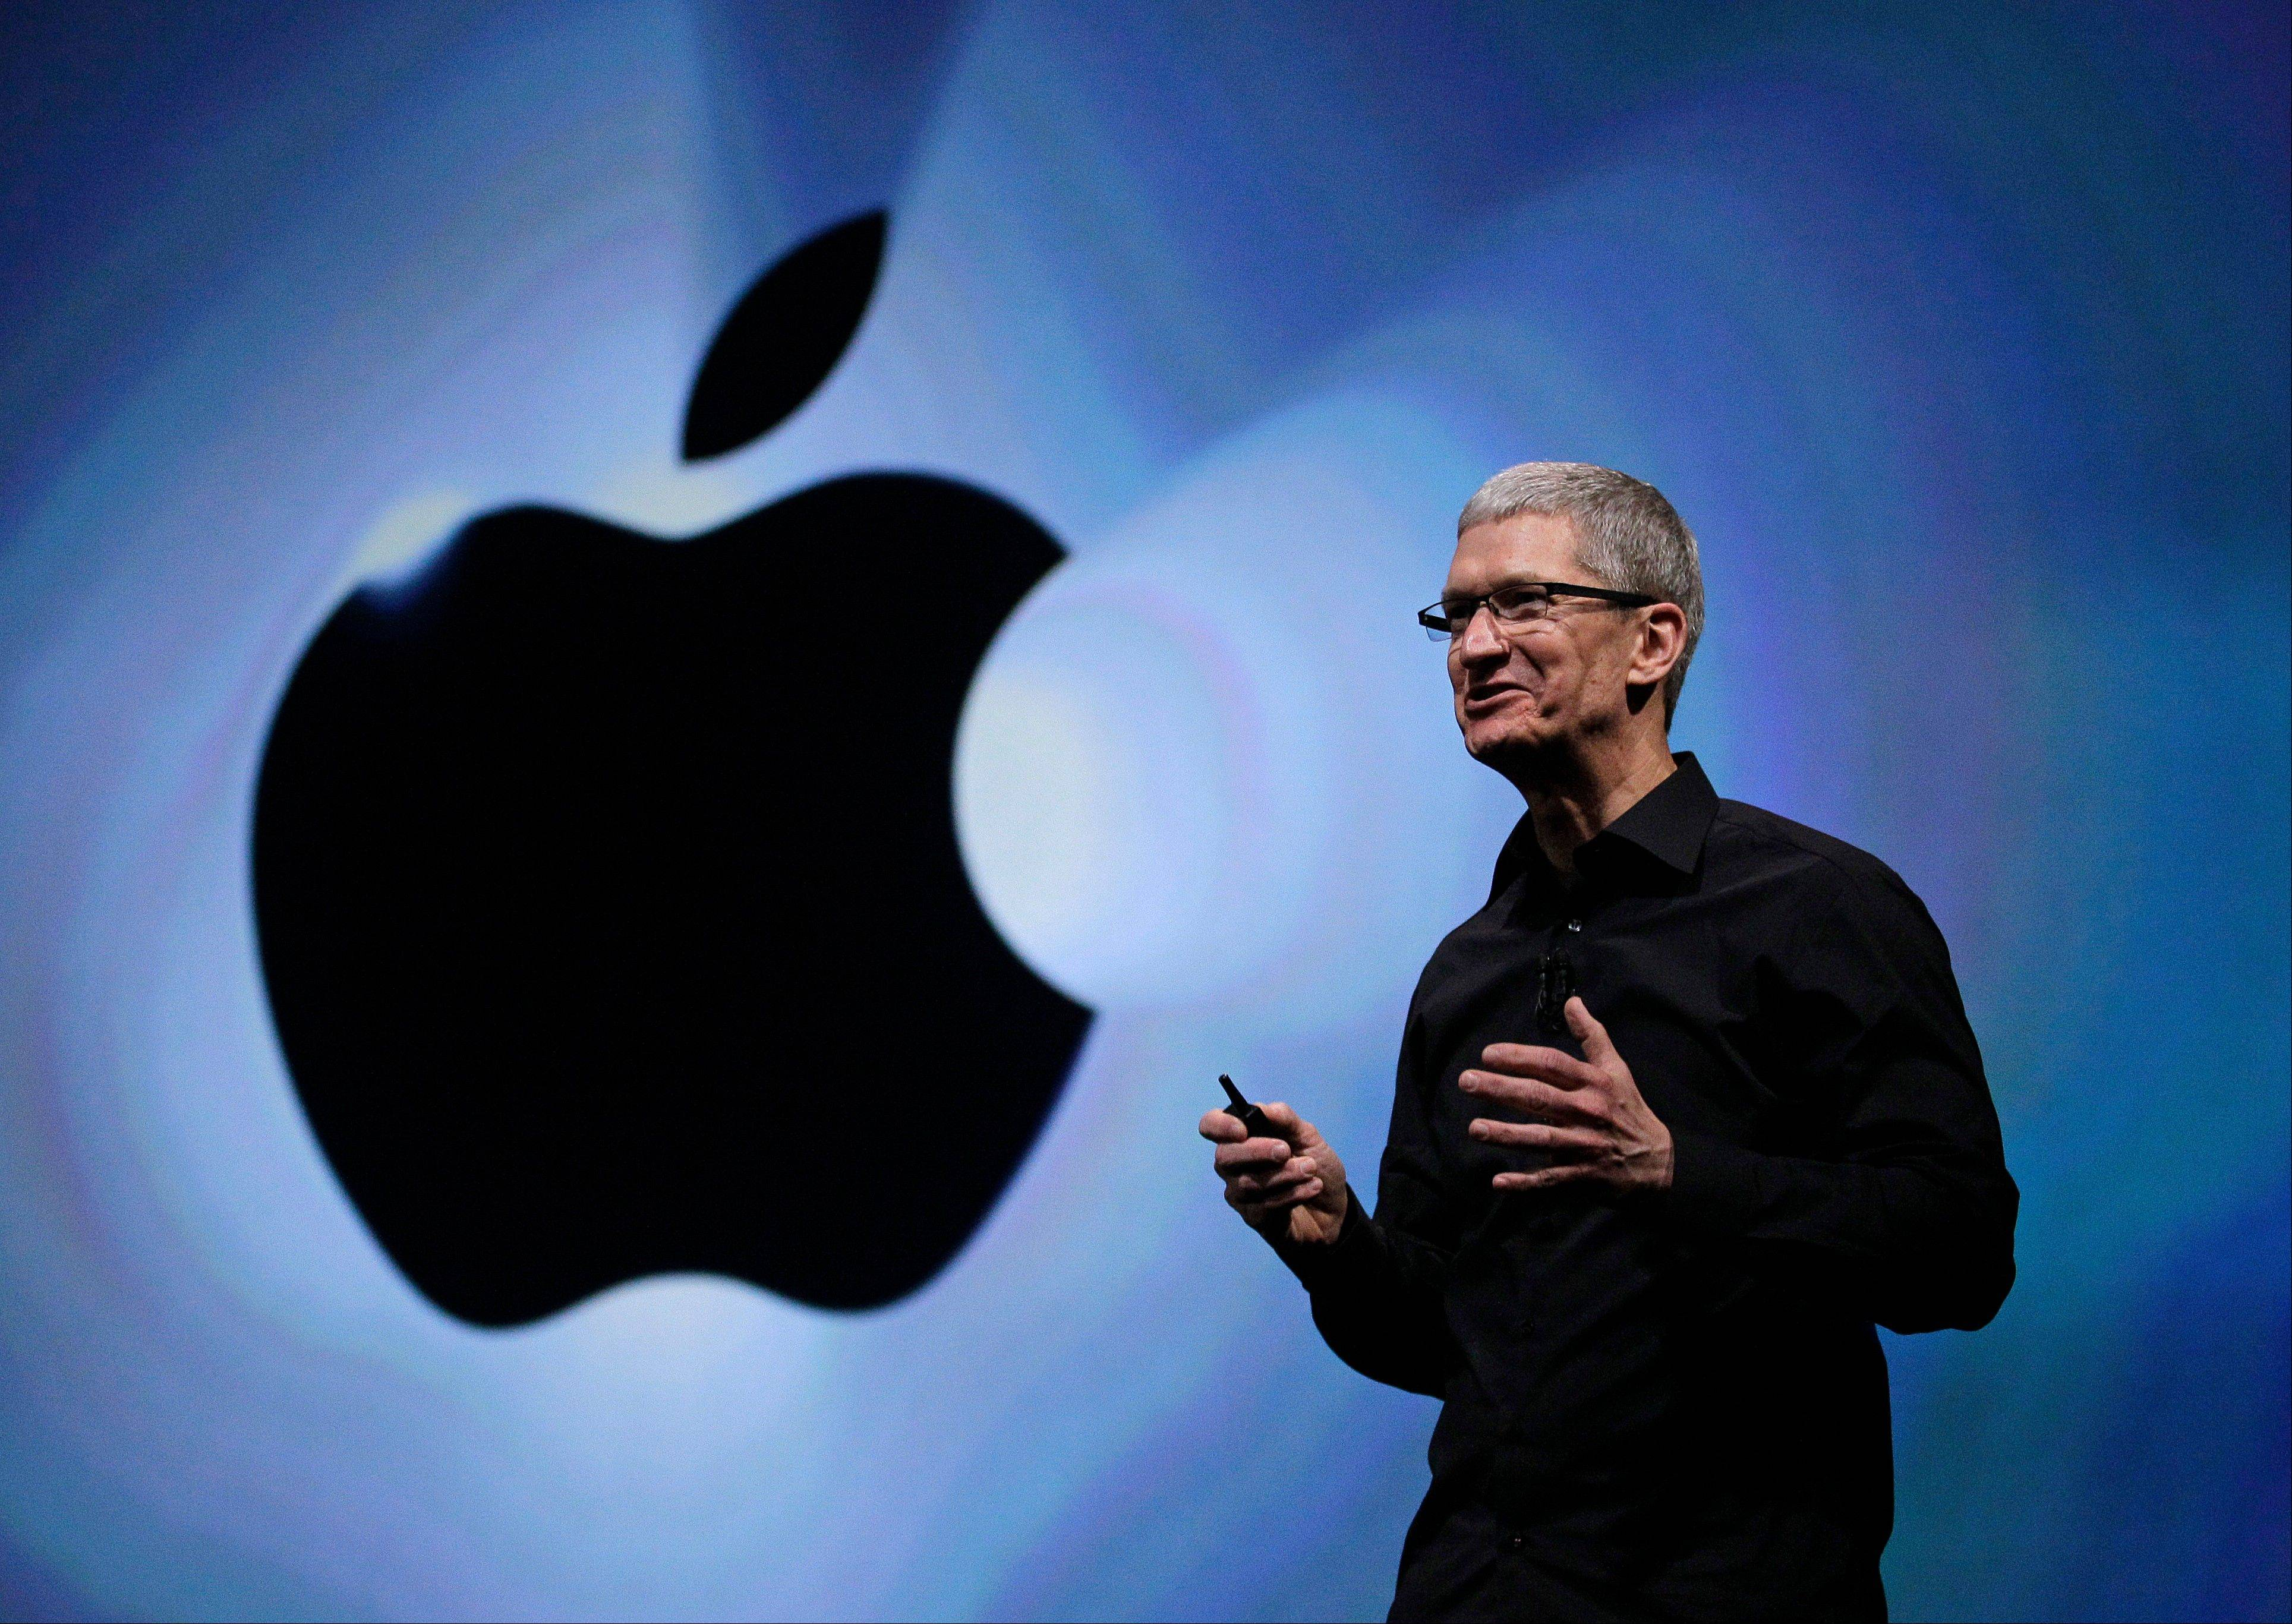 Associated Press Apple is emerging as a gentler, cuddlier corporate citizen in the year after the death of CEO and co-founder Steve Jobs. CEO Tim Cook's announcement that the company is moving a Mac production line to the U.S. is just the latest step in a charm offensive designed to soften Apple's image.